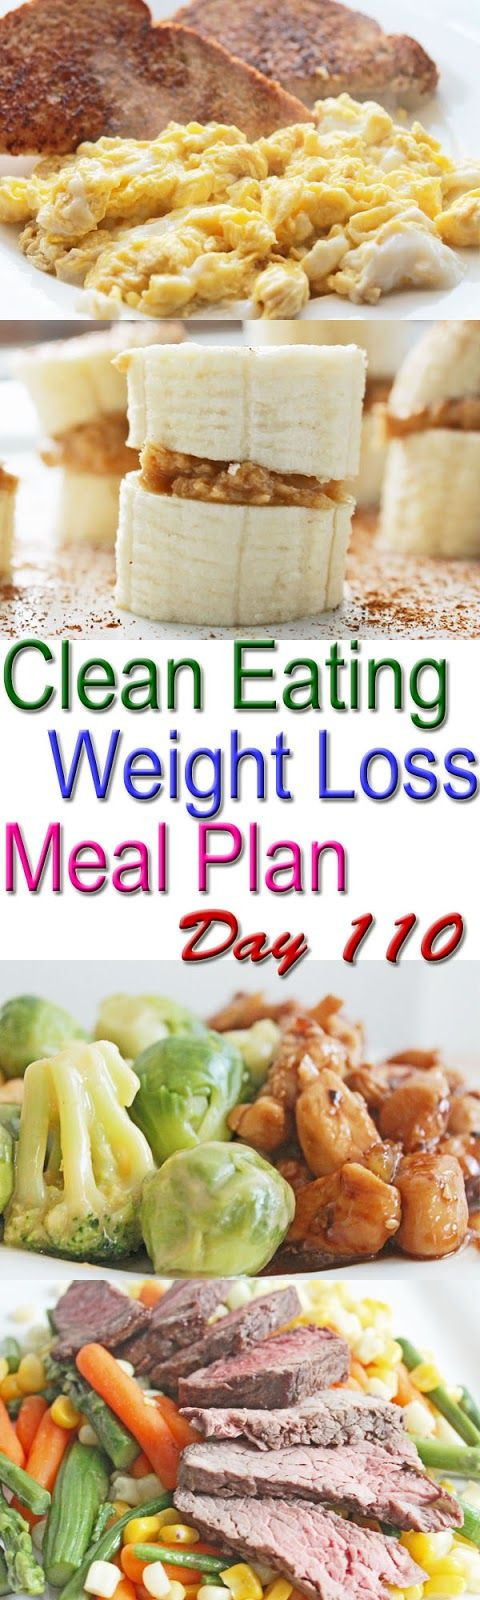 Clean Eating Foods For Weight Loss  25 best ideas about Weight Loss Meal Plan on Pinterest